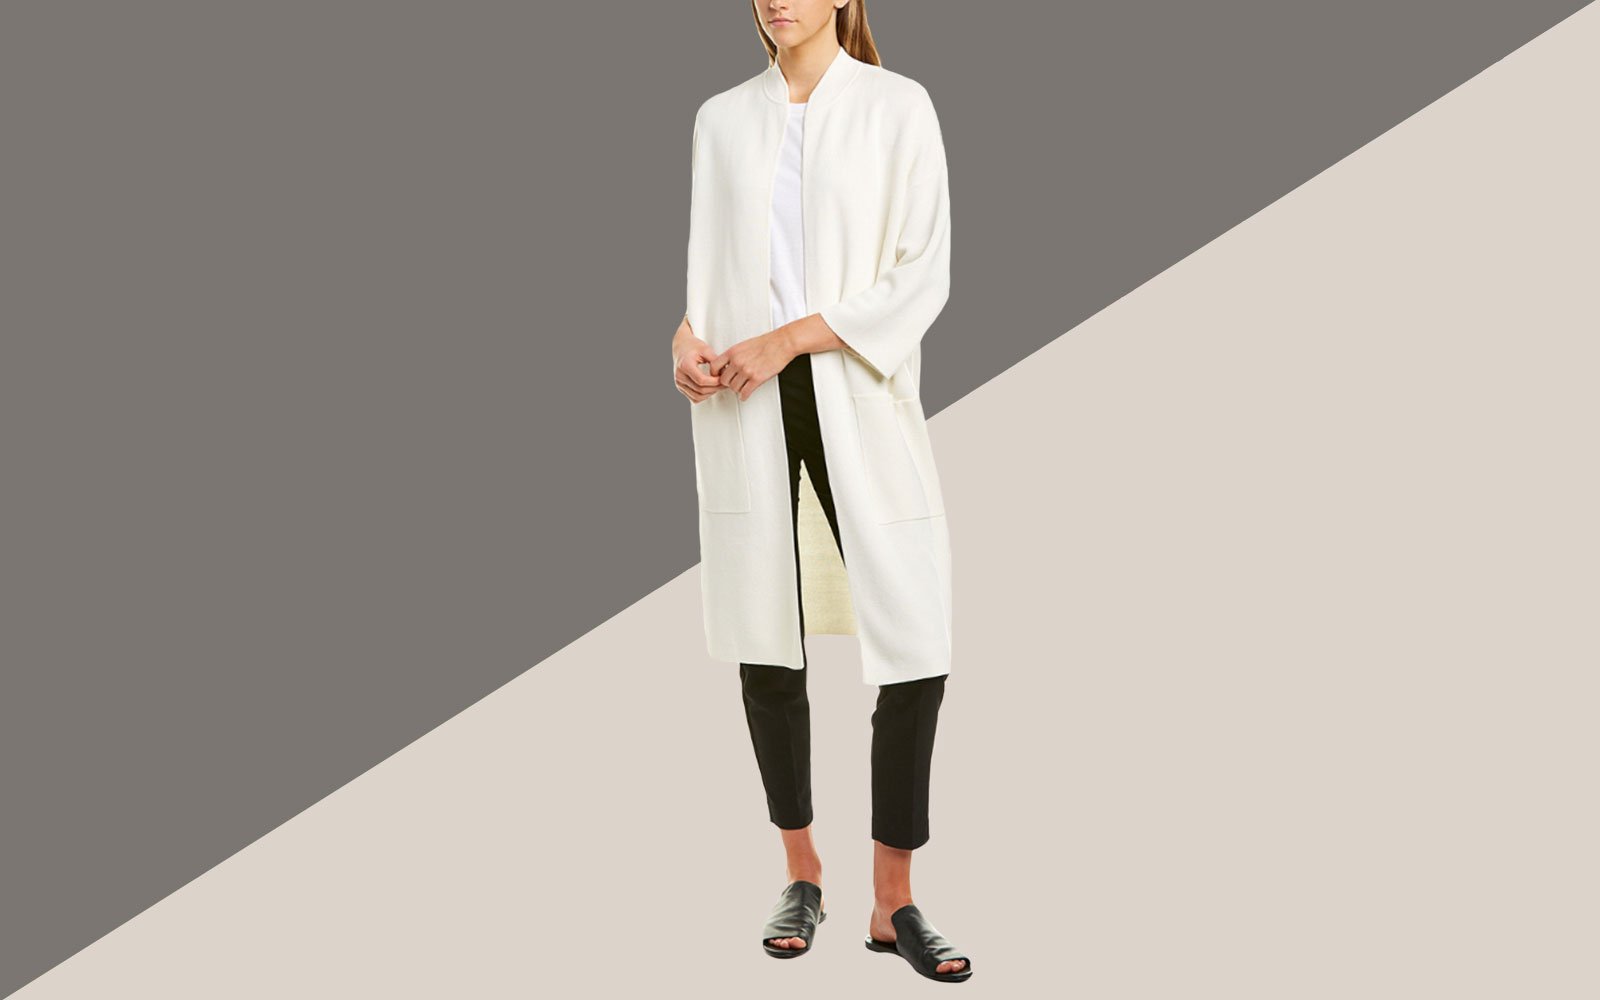 Get Eileen Fisher's Classic Styles at Up to 60% Off for 3 Days Only